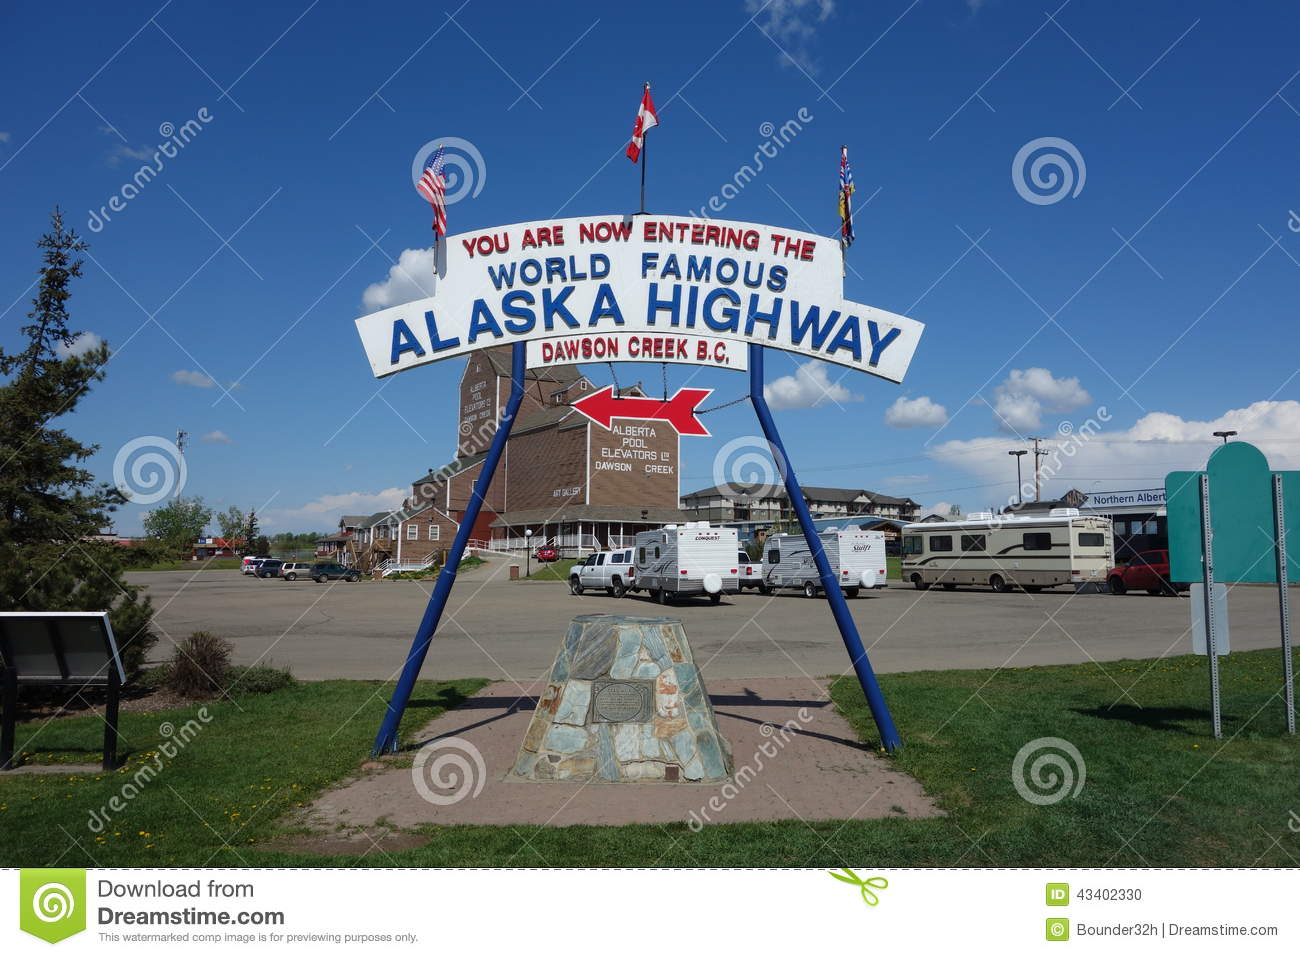 The famous alaska highway sign